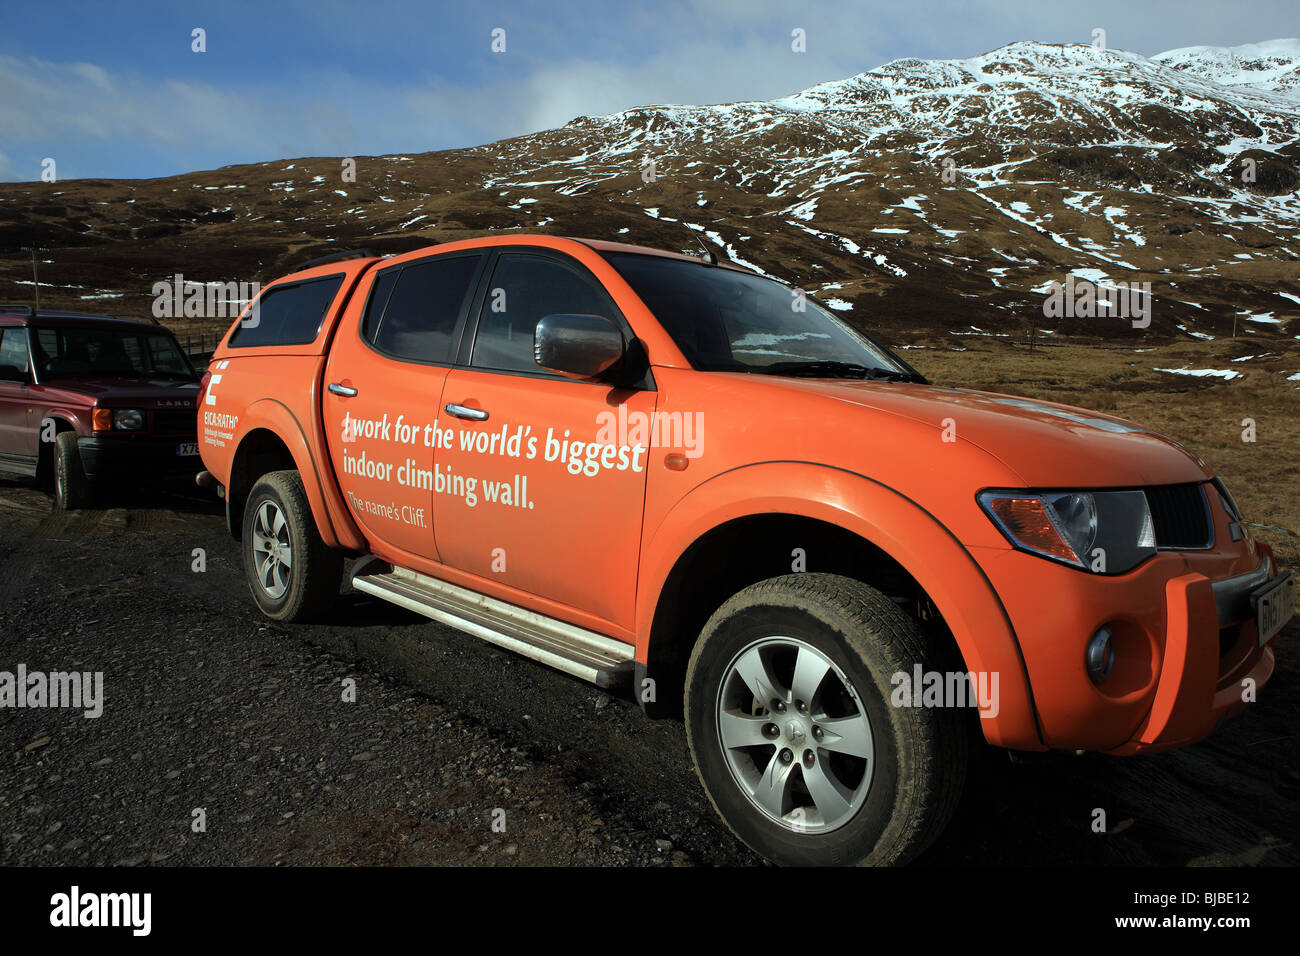 Car advertising Ratho in Edinburgh which is the world's biggest indoor climbing wall - Stock Image